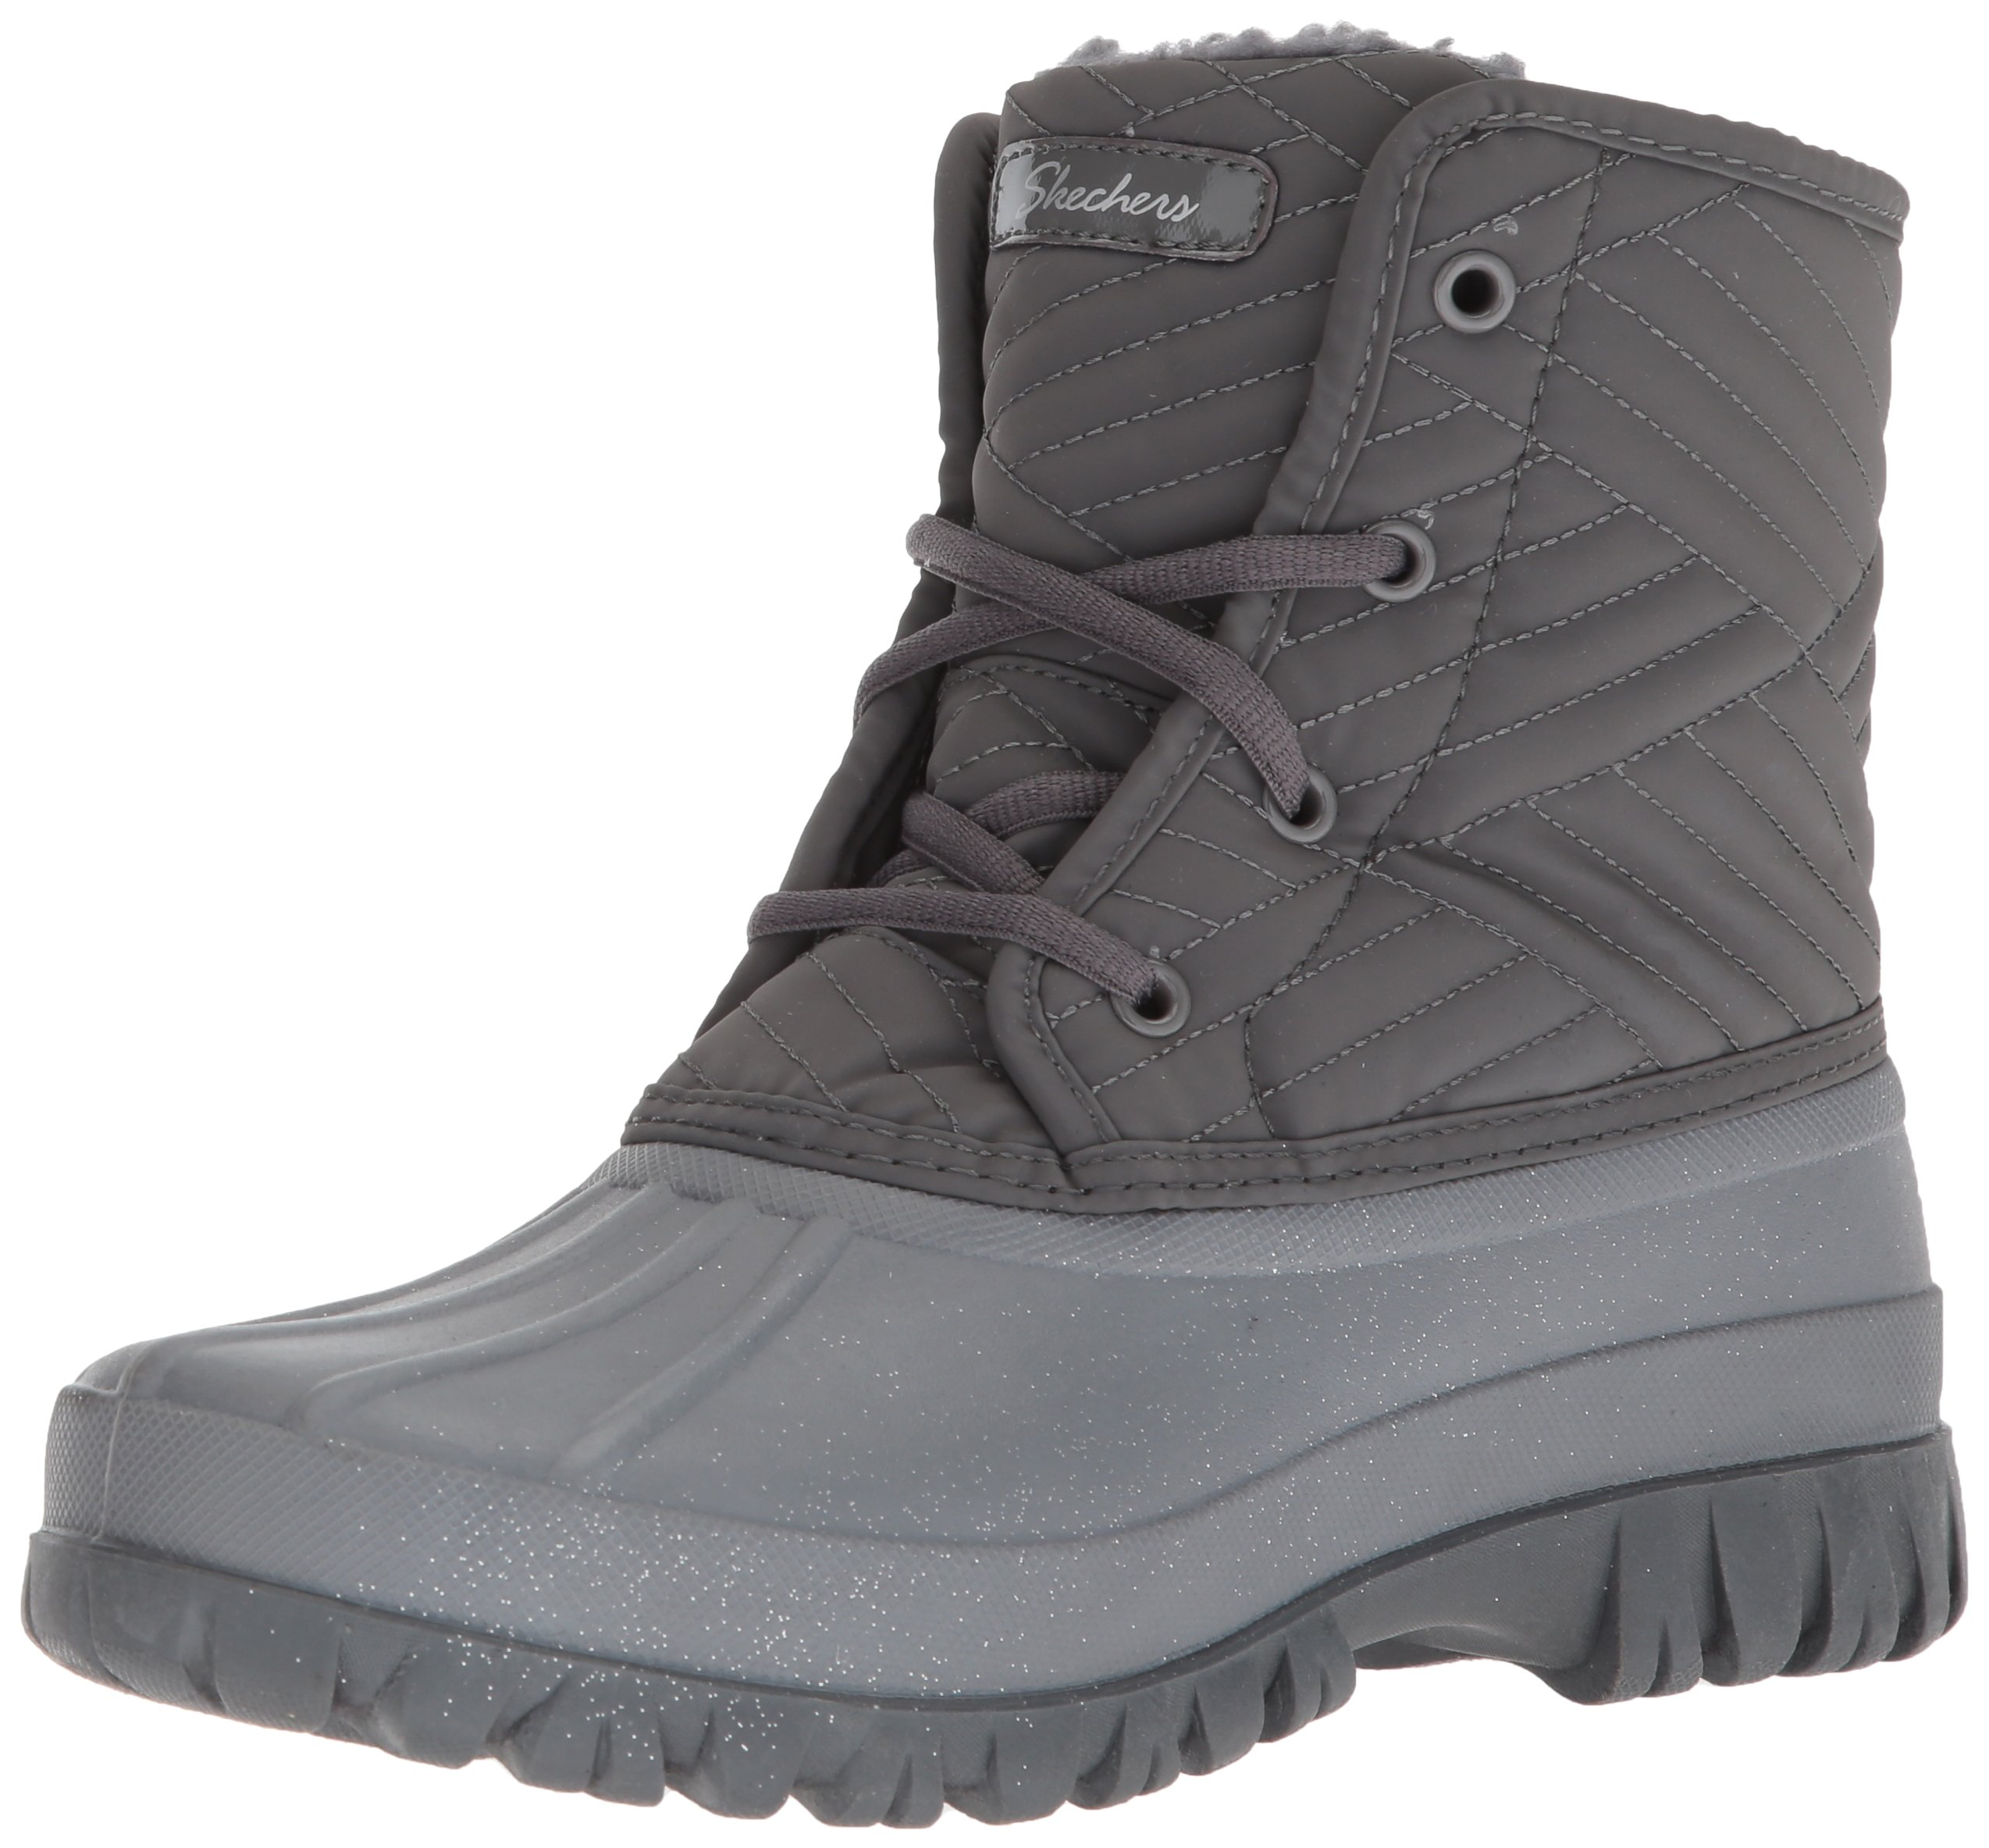 WindomBottes Skechers FemmeGrischarcoal37 WindomBottes Eu Skechers Eu FemmeGrischarcoal37 Skechers nk0wOP8